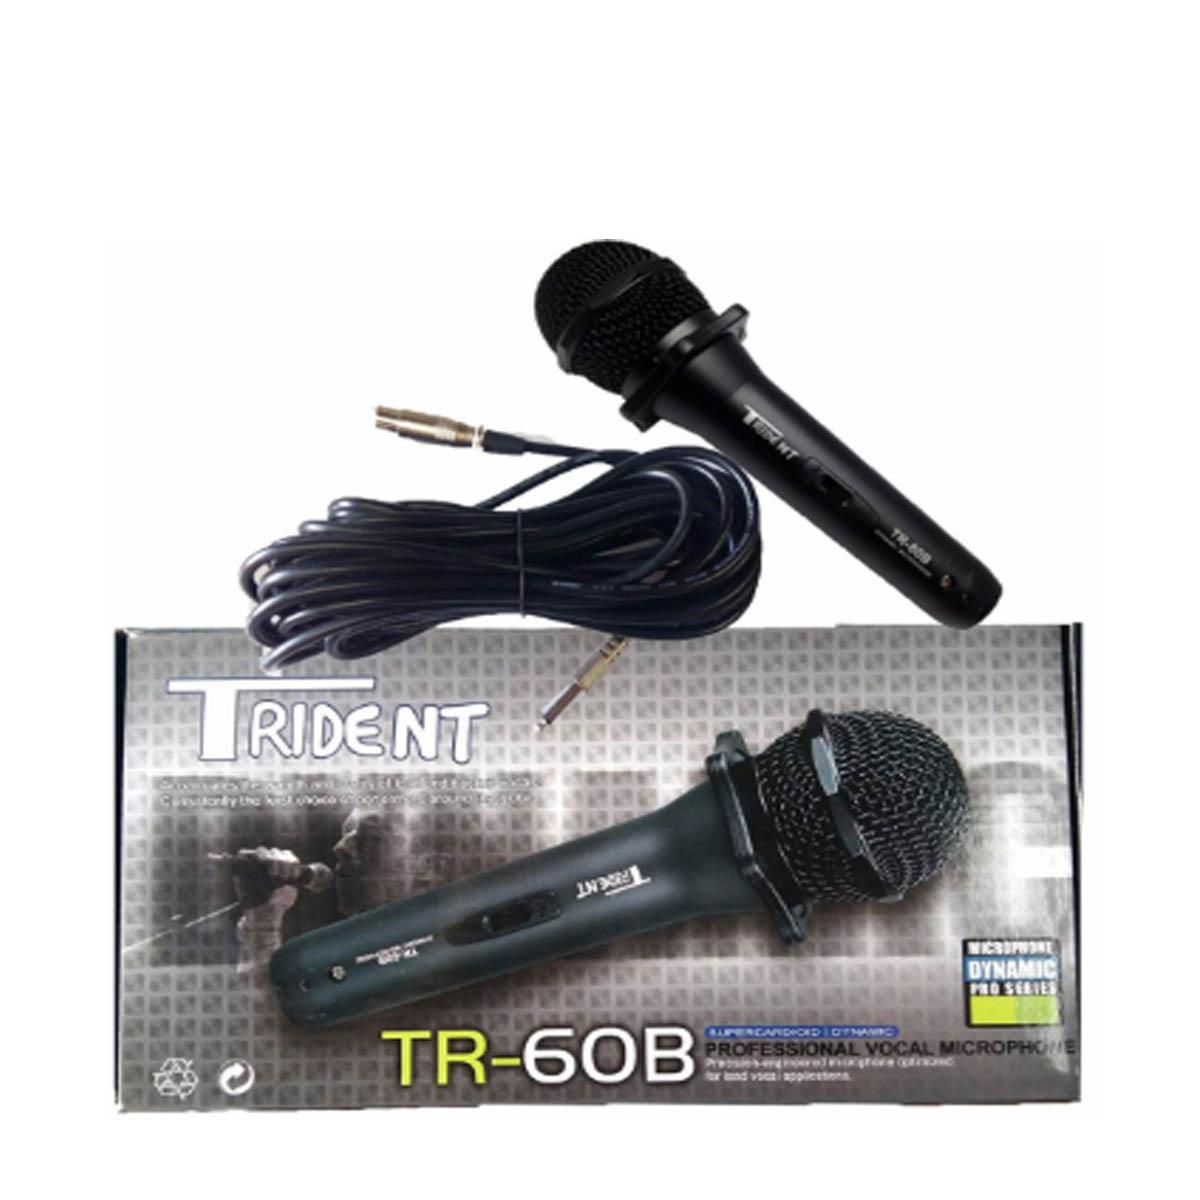 Trident Philippines Price List Microphones Mic Stands Hyundai Microphone Wiring Diagram Tr 60b Wired Heavy Duty Stereo W 10m Wire